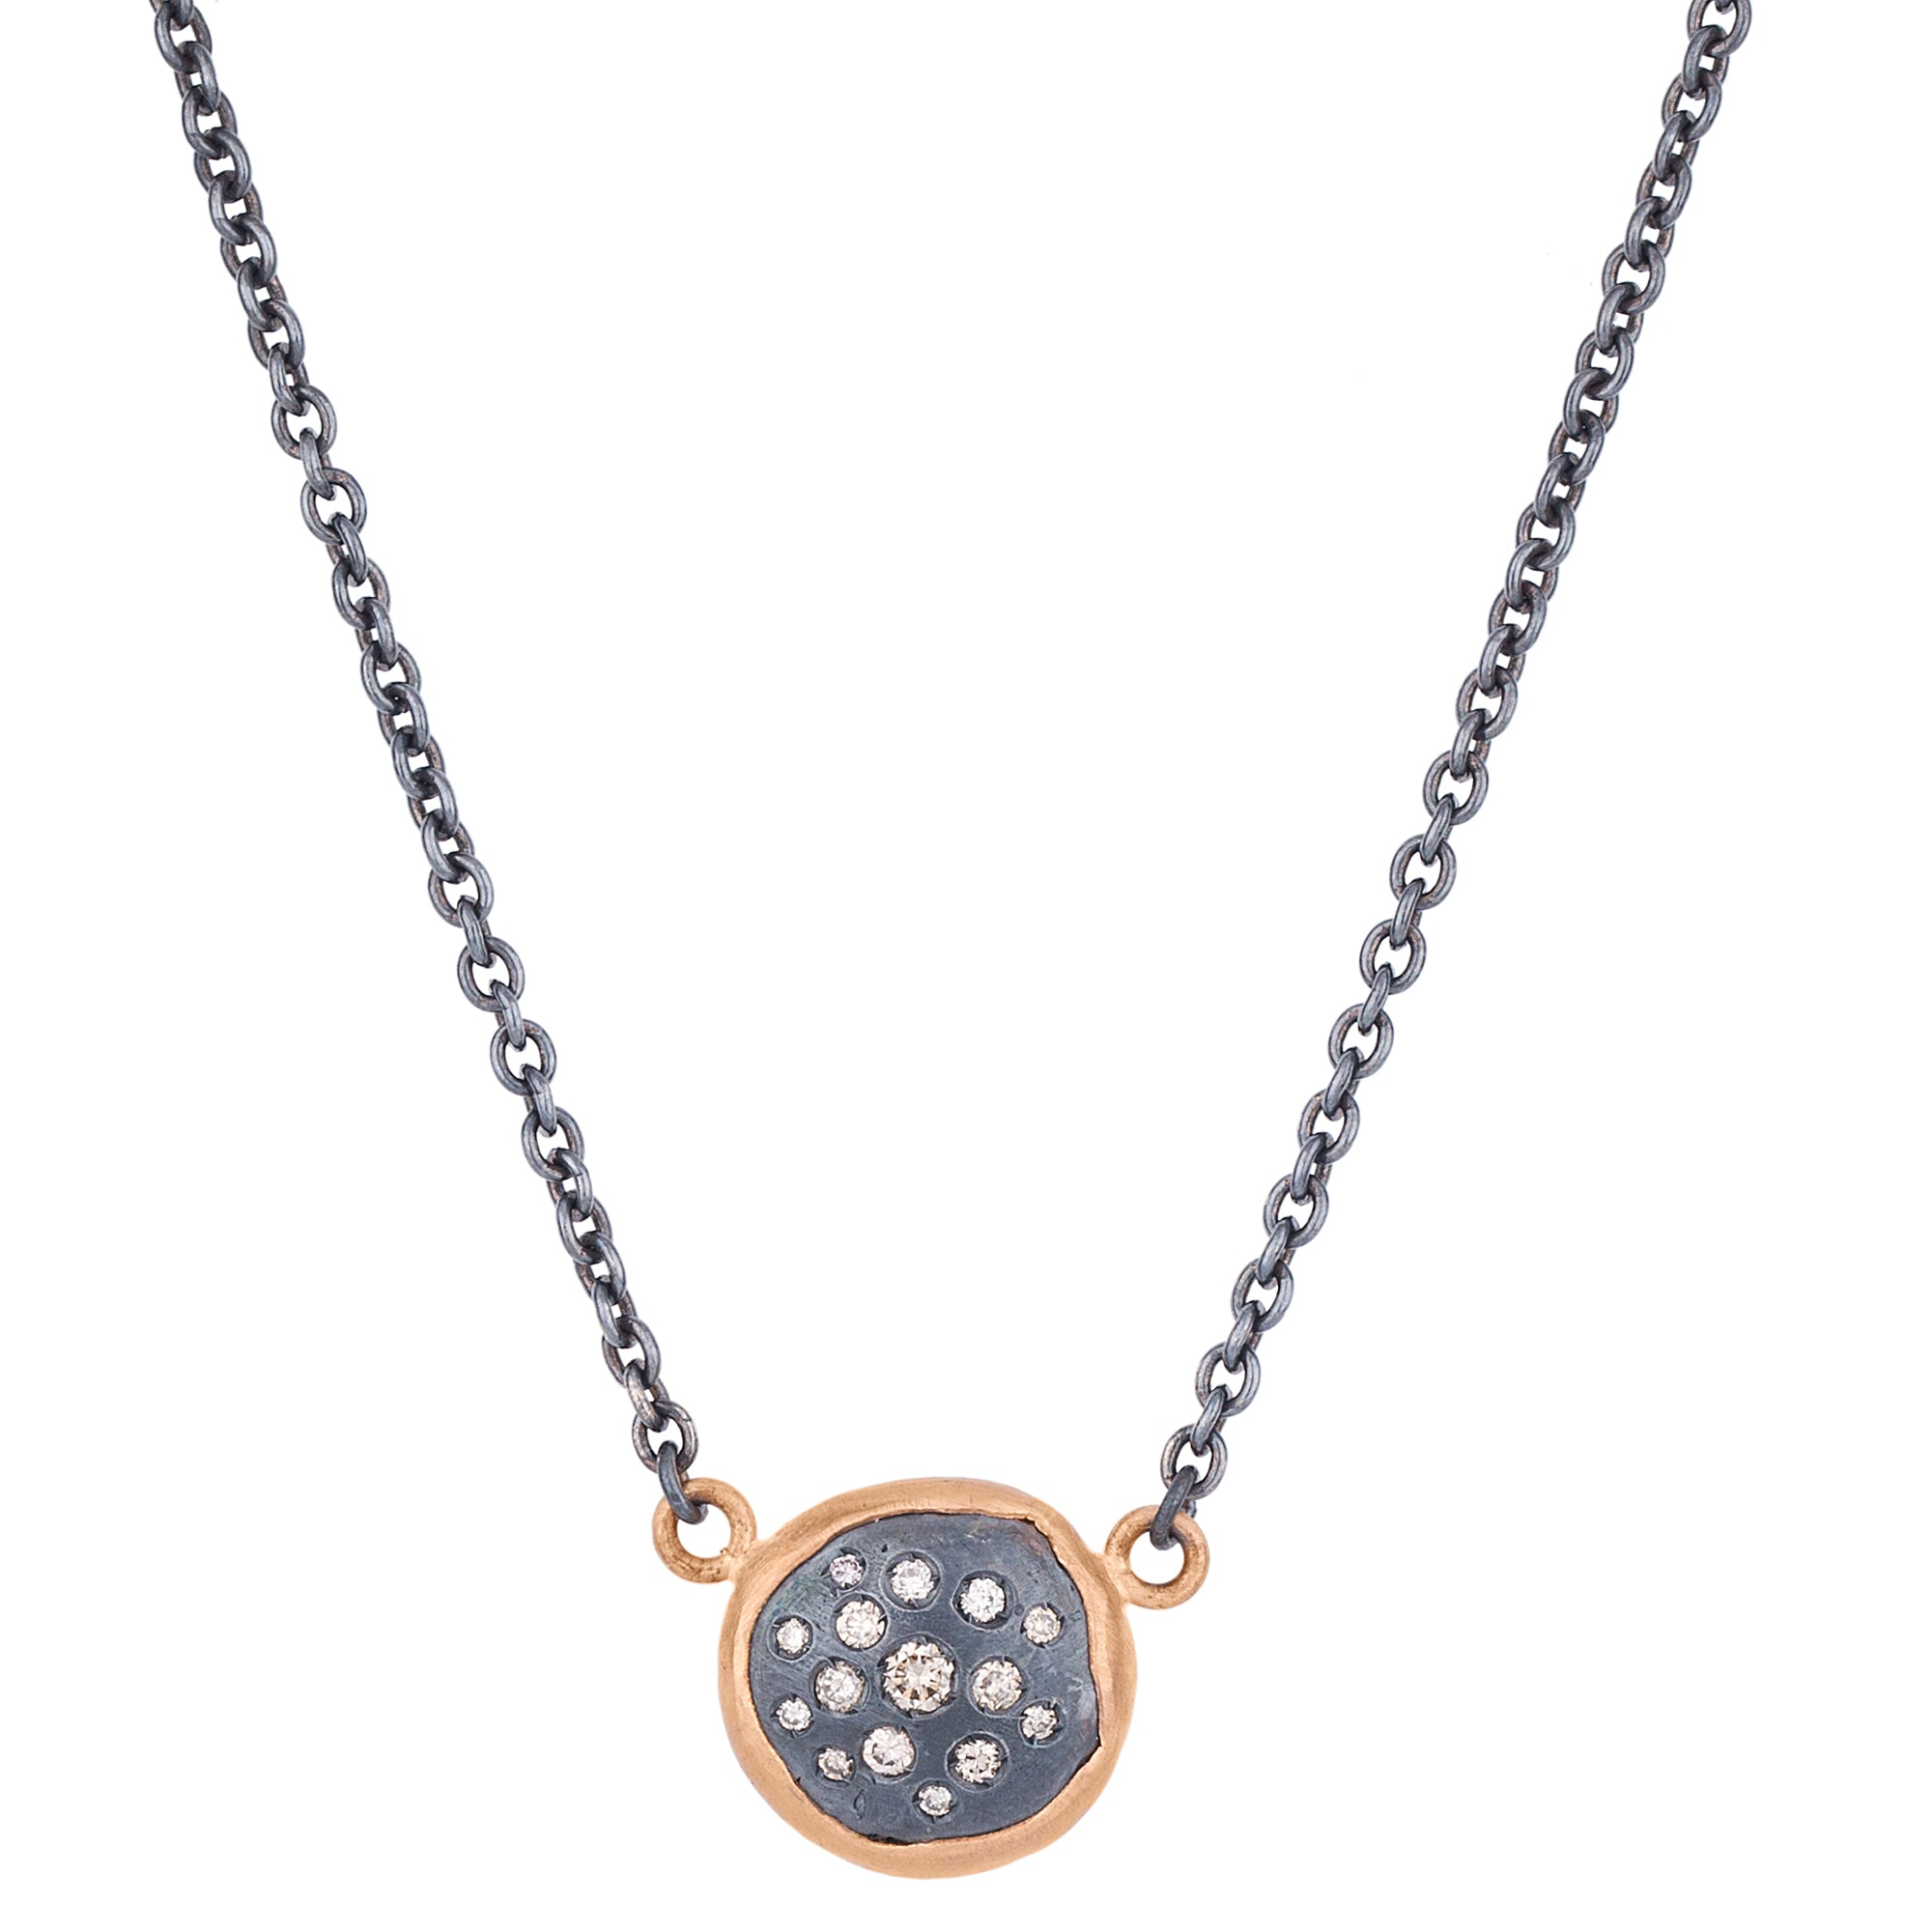 "Lika Behar ""Peach Glow"" Cognac Diamond Necklace Pendant Oxidized Silver & 18K Rose Gold"